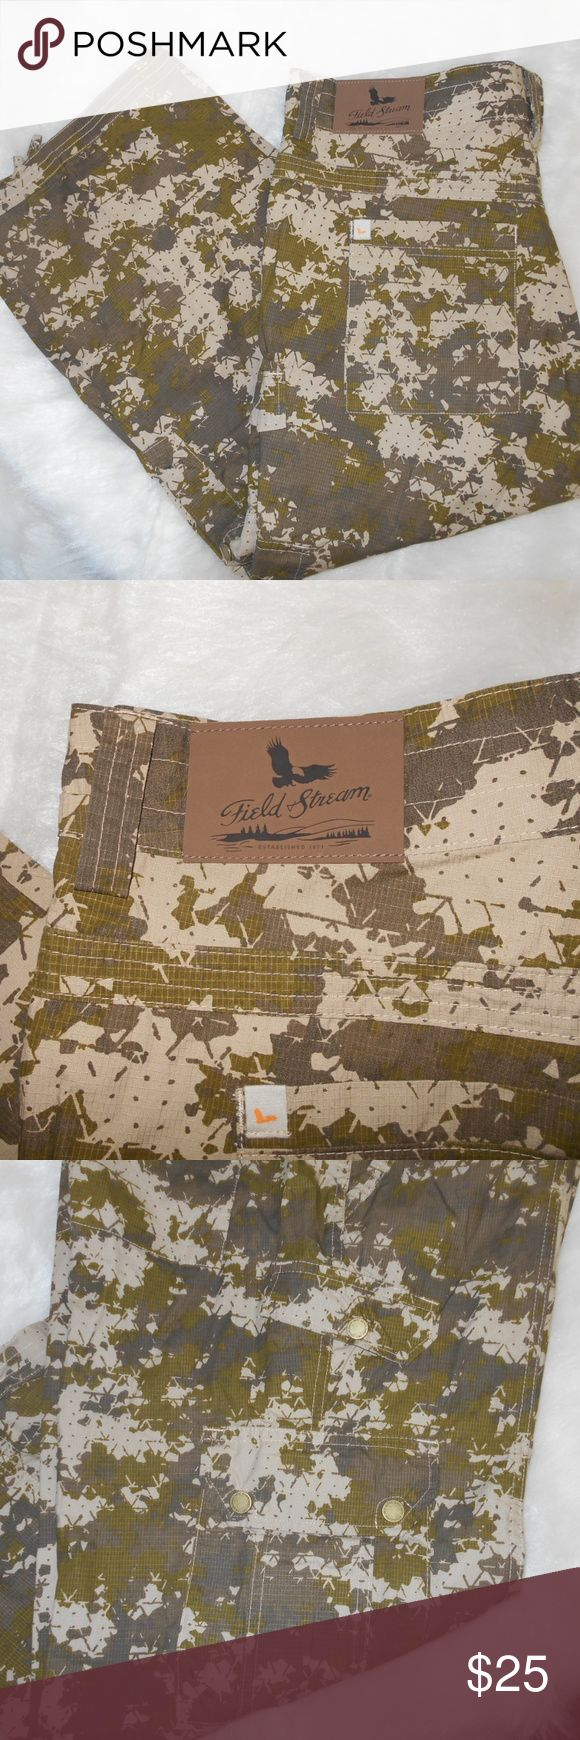 """Field & Stream ladies camo cargo capris, size 14 Camo capris, cargo pants with drawstring at bottom of leg. 2 pockets & coin pocket, 2 back pockets.  Plus 4 cargo pockets with flap/snap closure. Excellent condition from non smoking home 19.5"""" waist side to side 25"""" hip side to side 9.5"""" rise 25"""" inseam 33"""" long measuring at side 100% cotton Field & Stream Pants"""